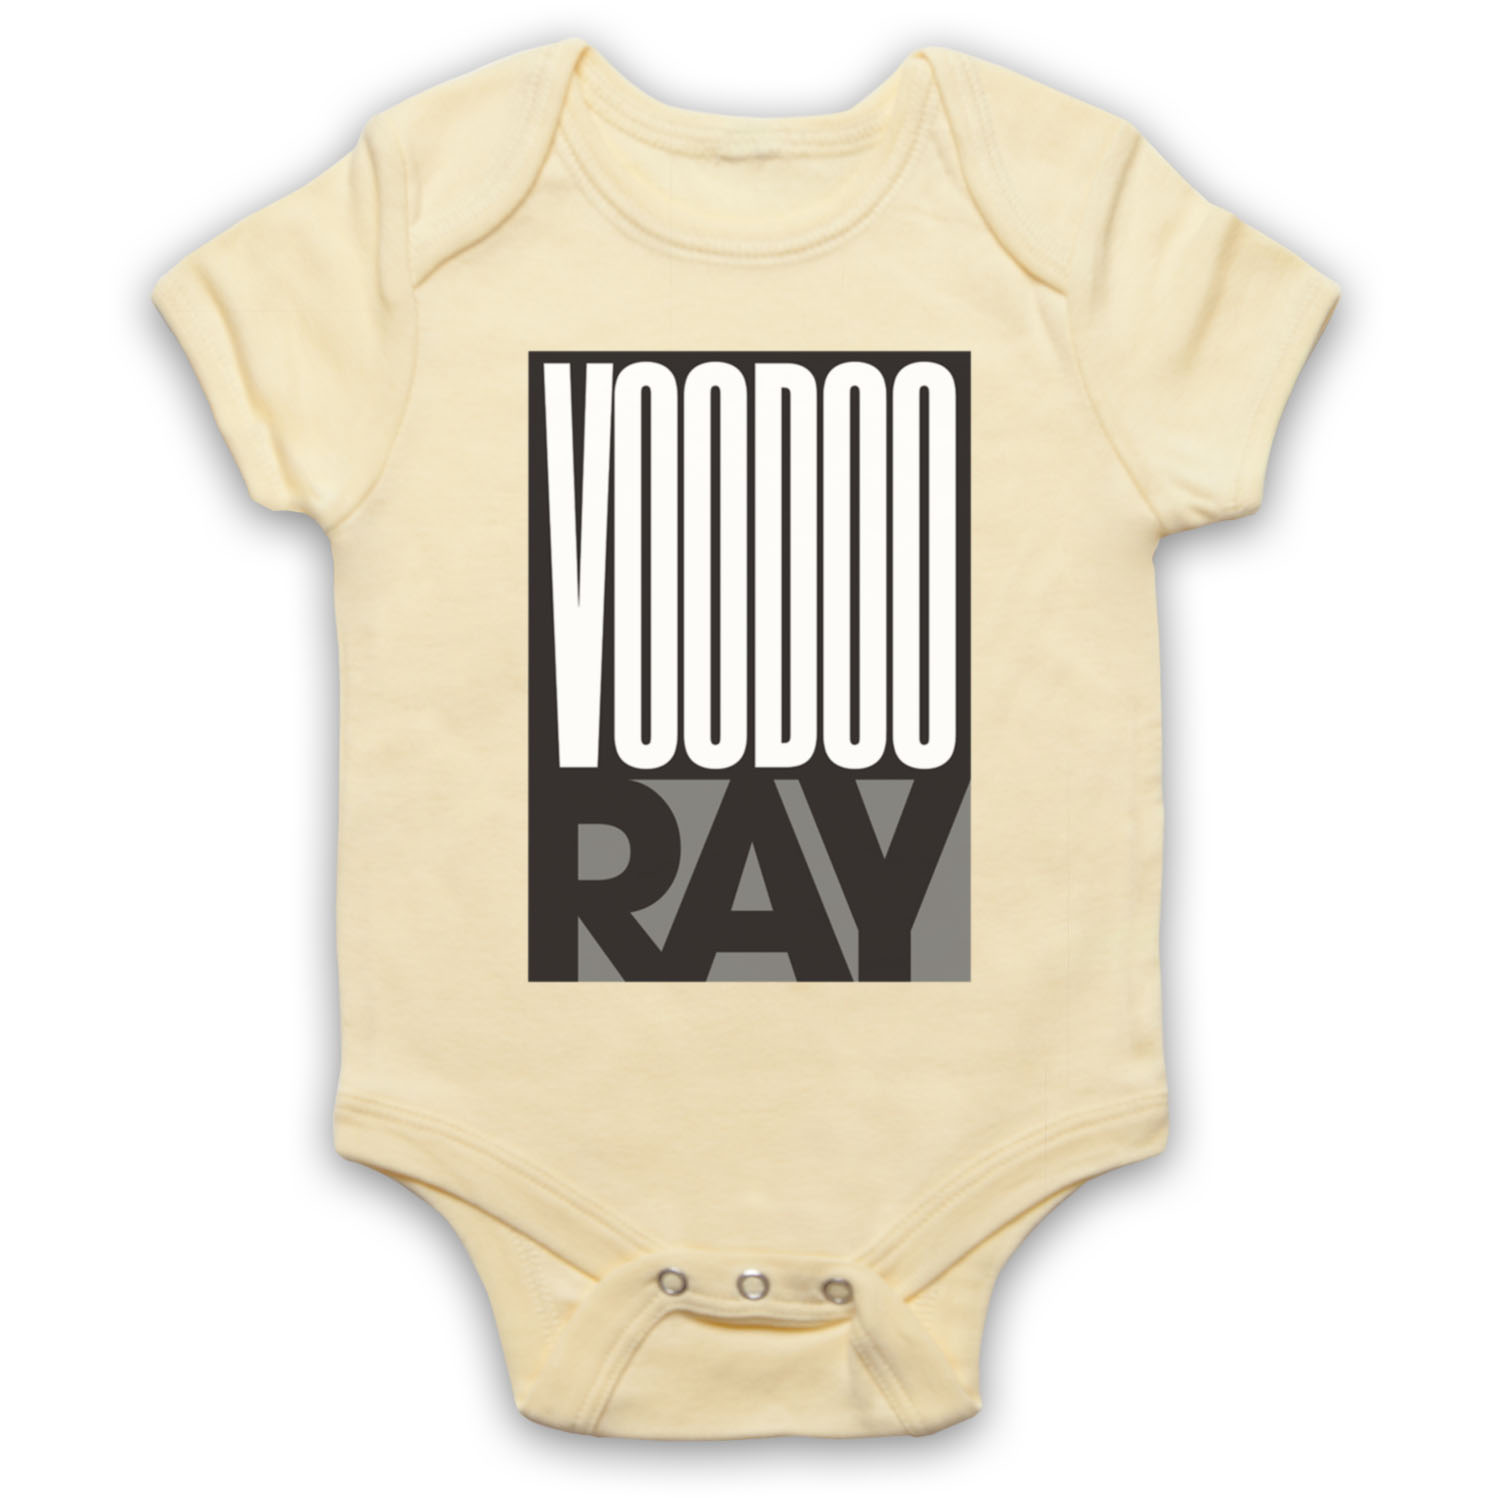 A-GUY-CALLED-GERALD-UNOFFICIAL-VOODOO-RAY-CLUB-HOUSE-BABY-GROW-BABYGROW-GIFT